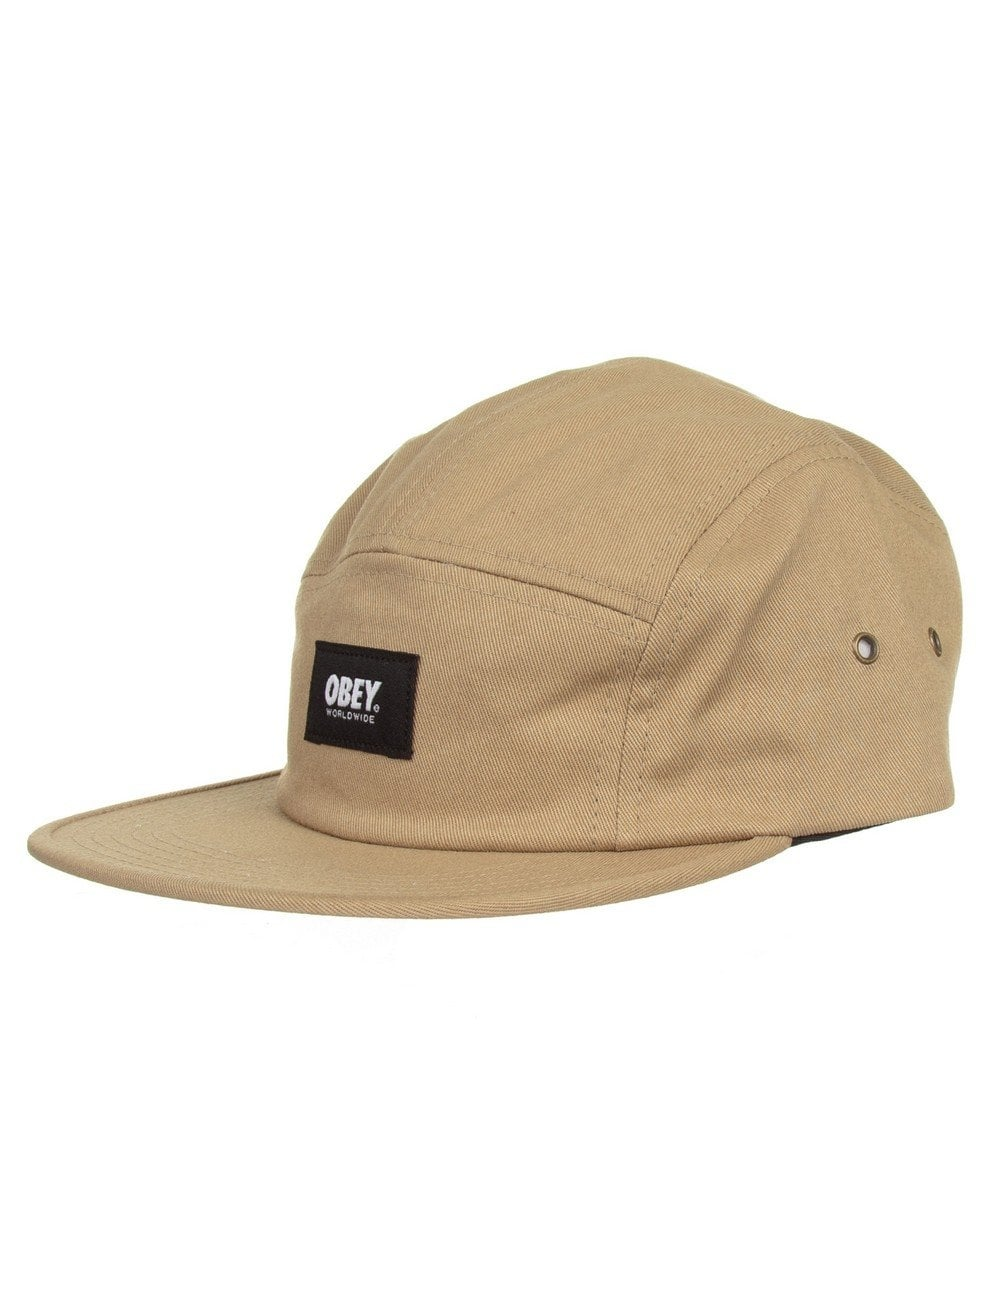 ce82ef2444c Obey Clothing Worldwide 5 Panel Hat - Khaki - Accessories from Fat ...